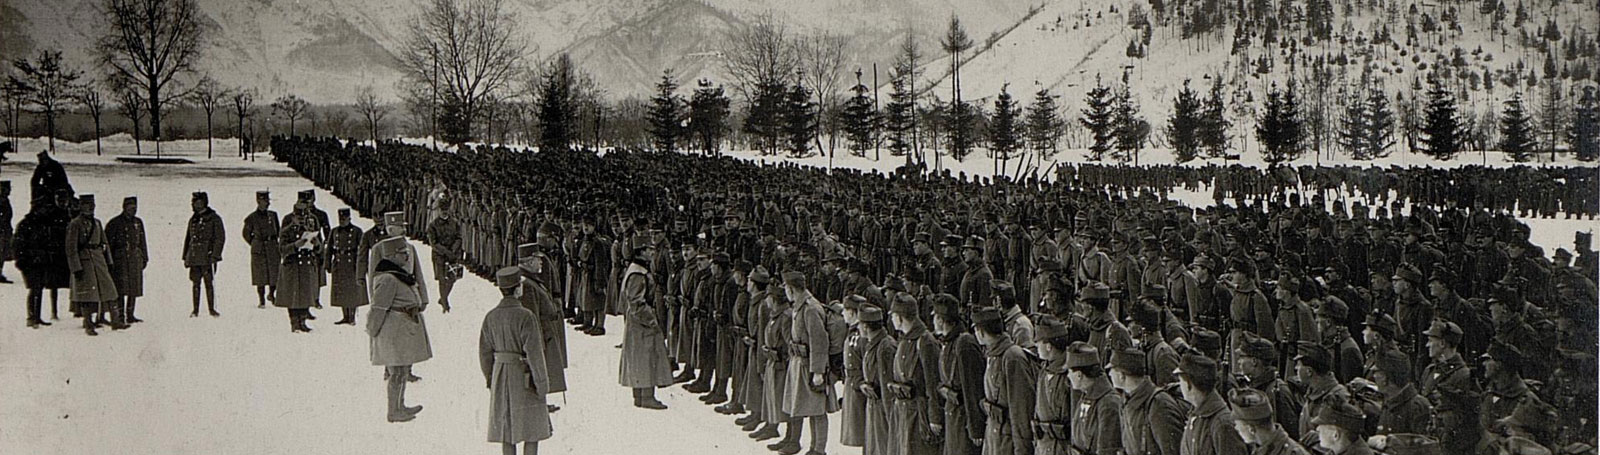 In snowy surroundings a regiment is being addressed by their leader.